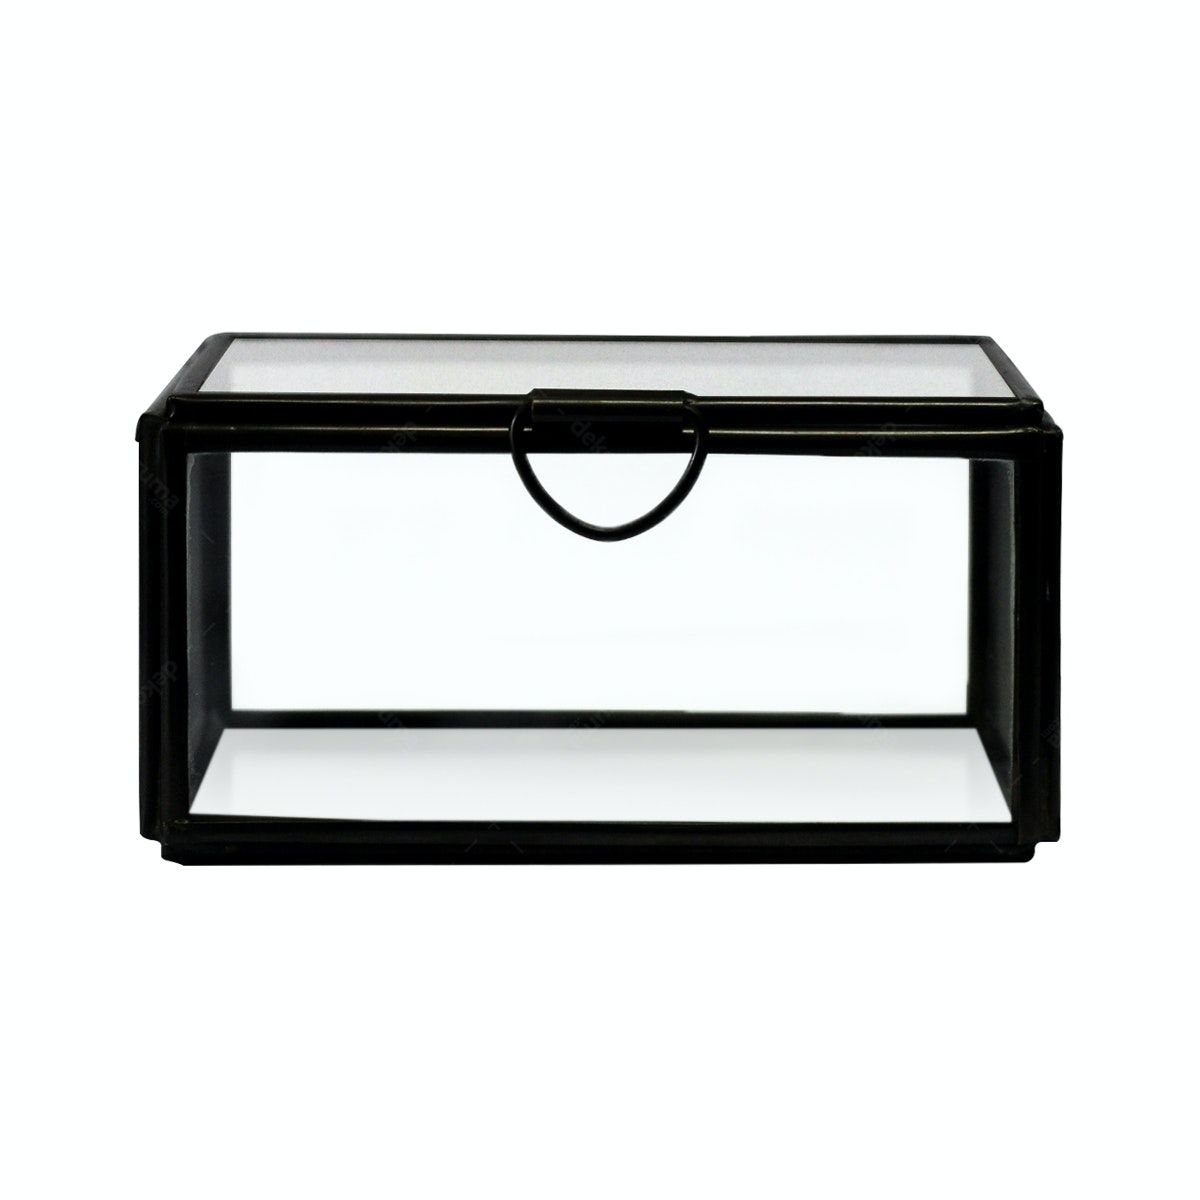 TAN LIVING Black Onyx Box